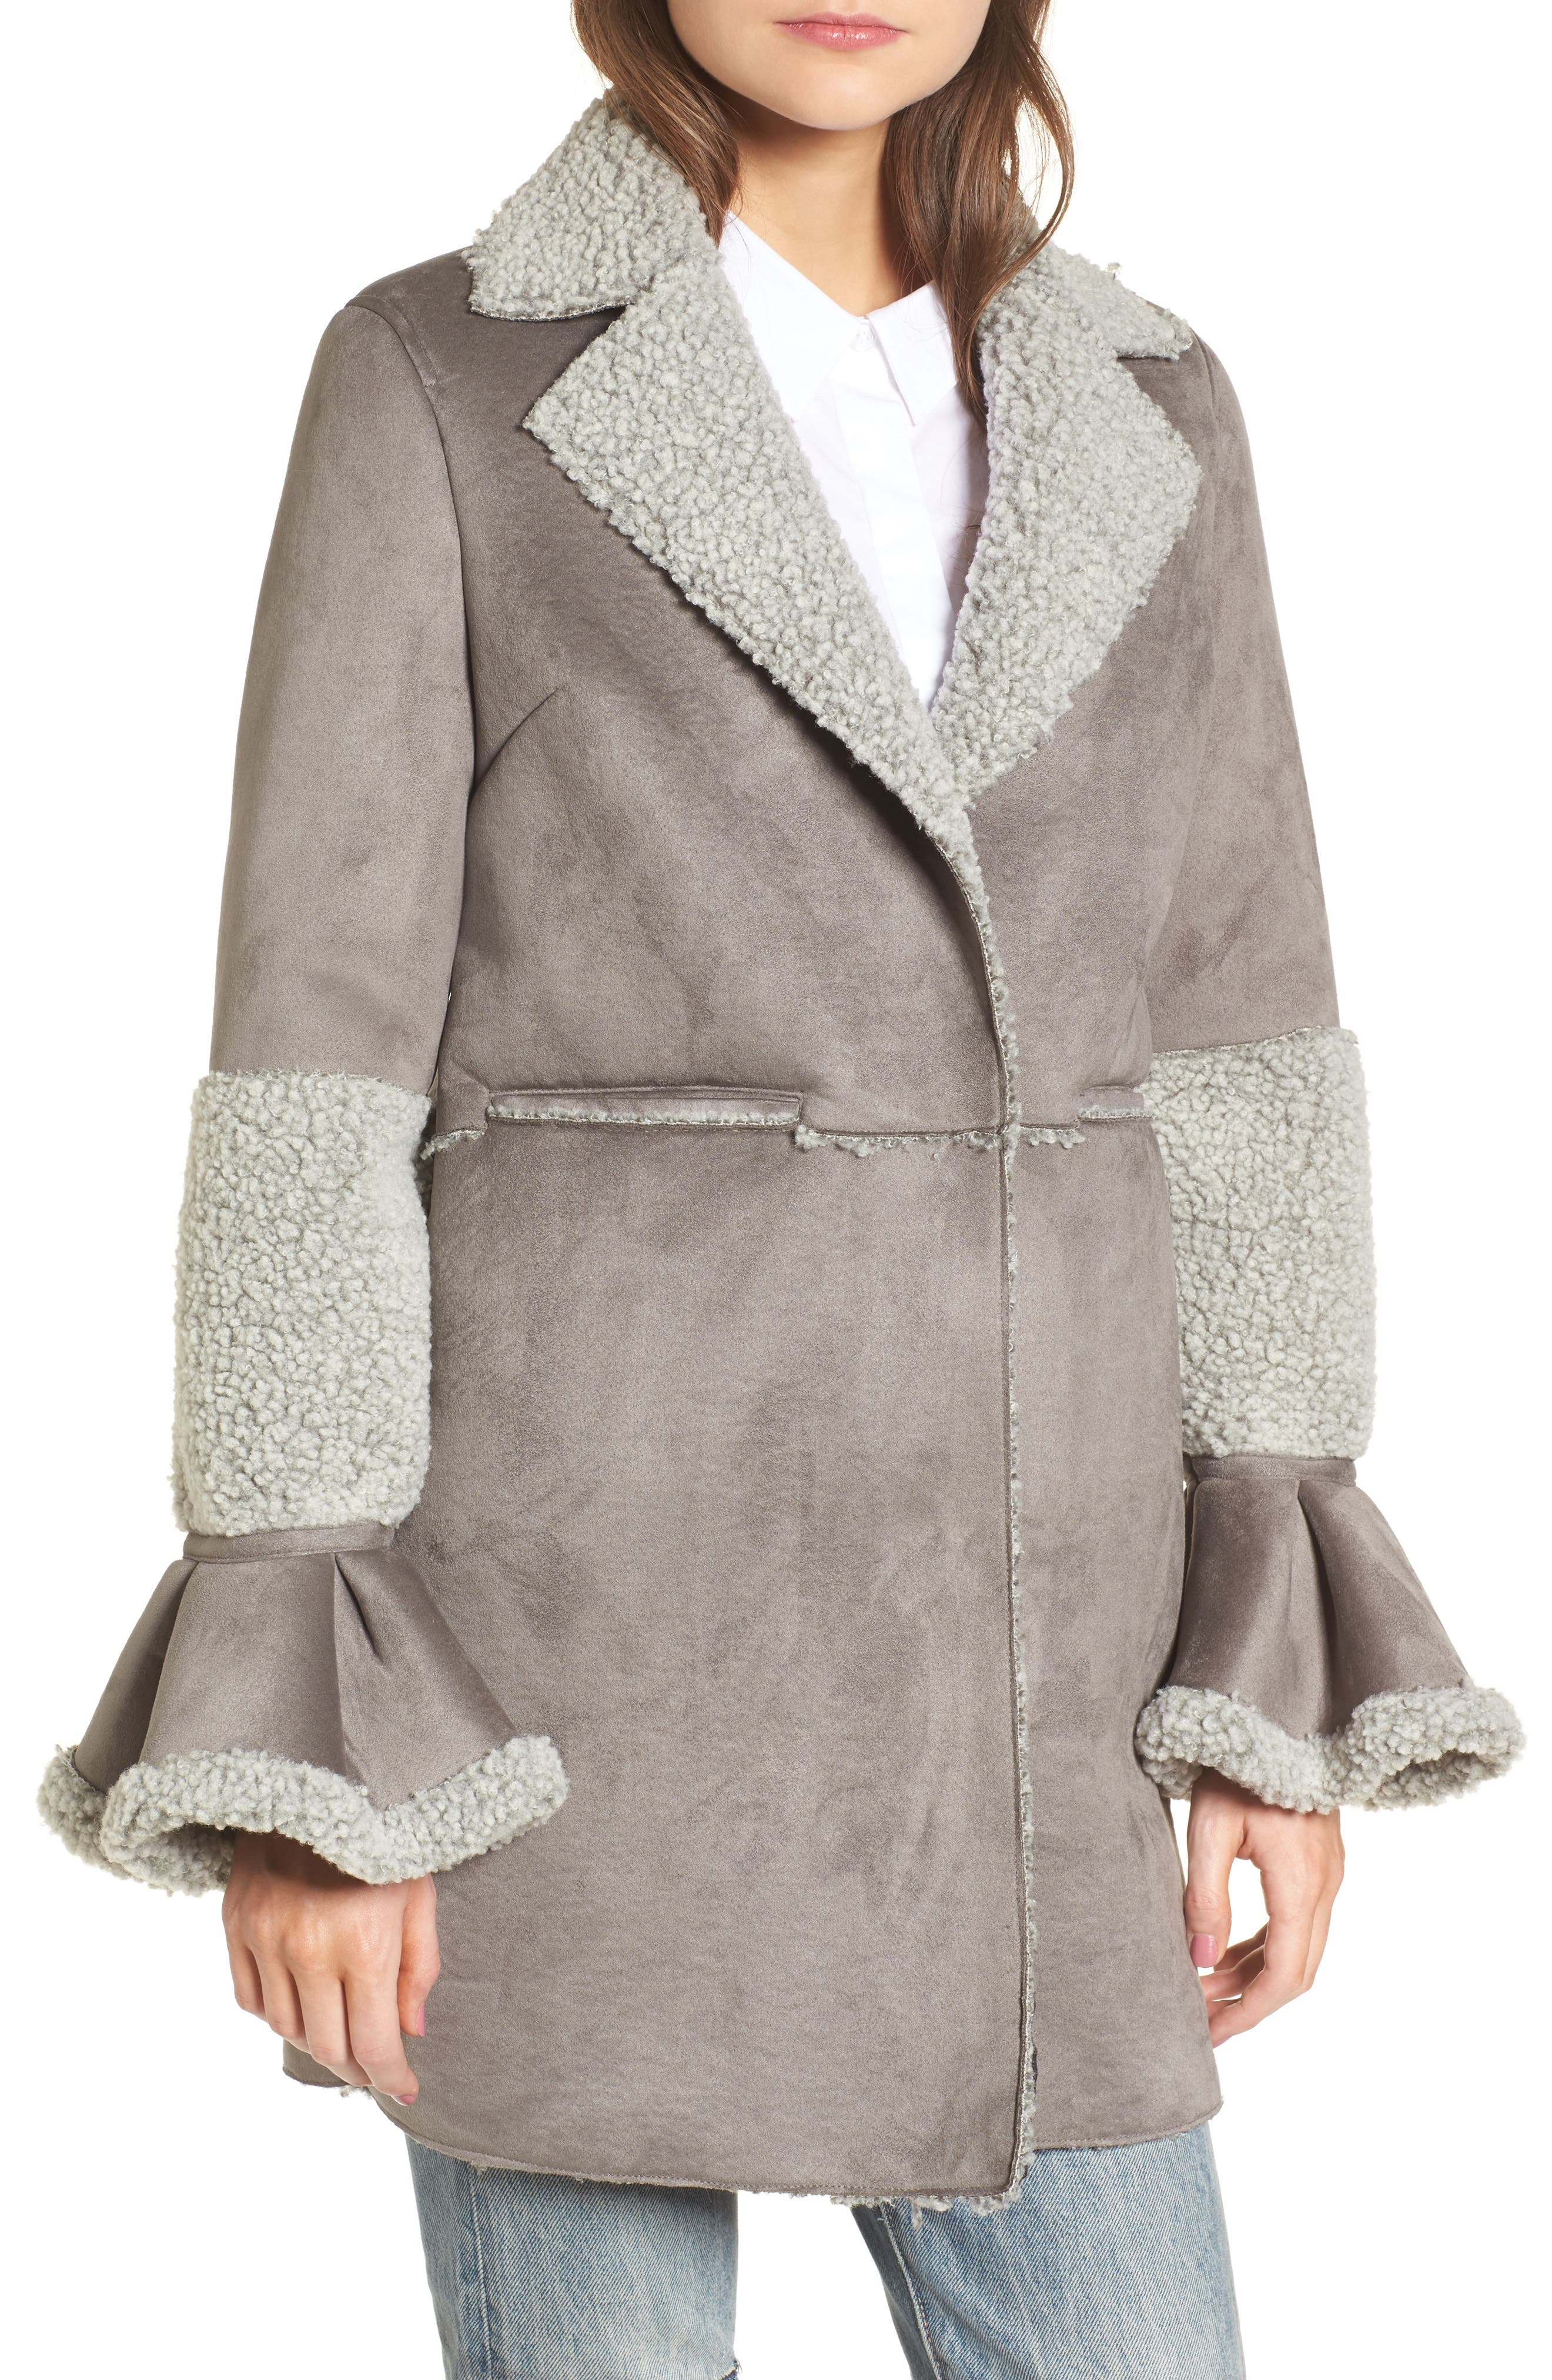 LOST INK,                             Faux Shearling Coat,                             Alternate thumbnail 4, color,                             020